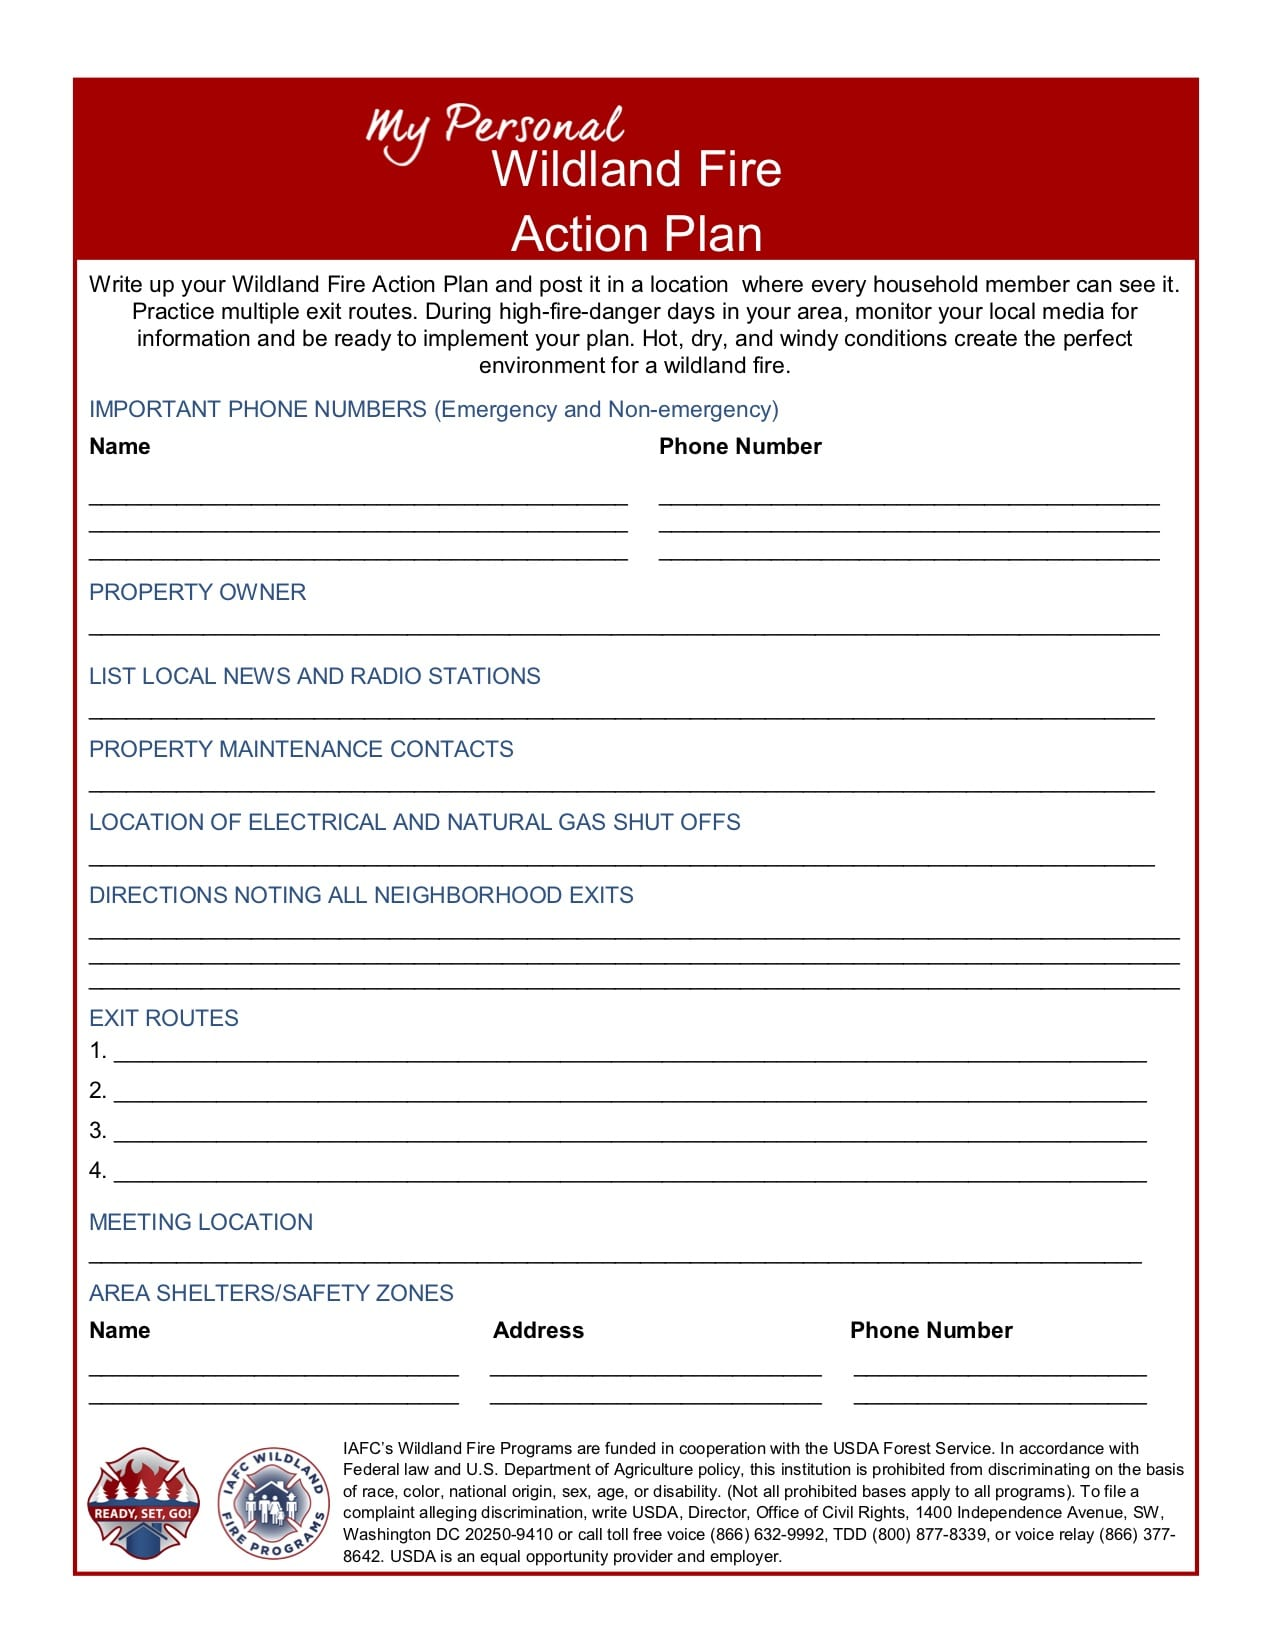 My personal Wildland Fire Action Plan